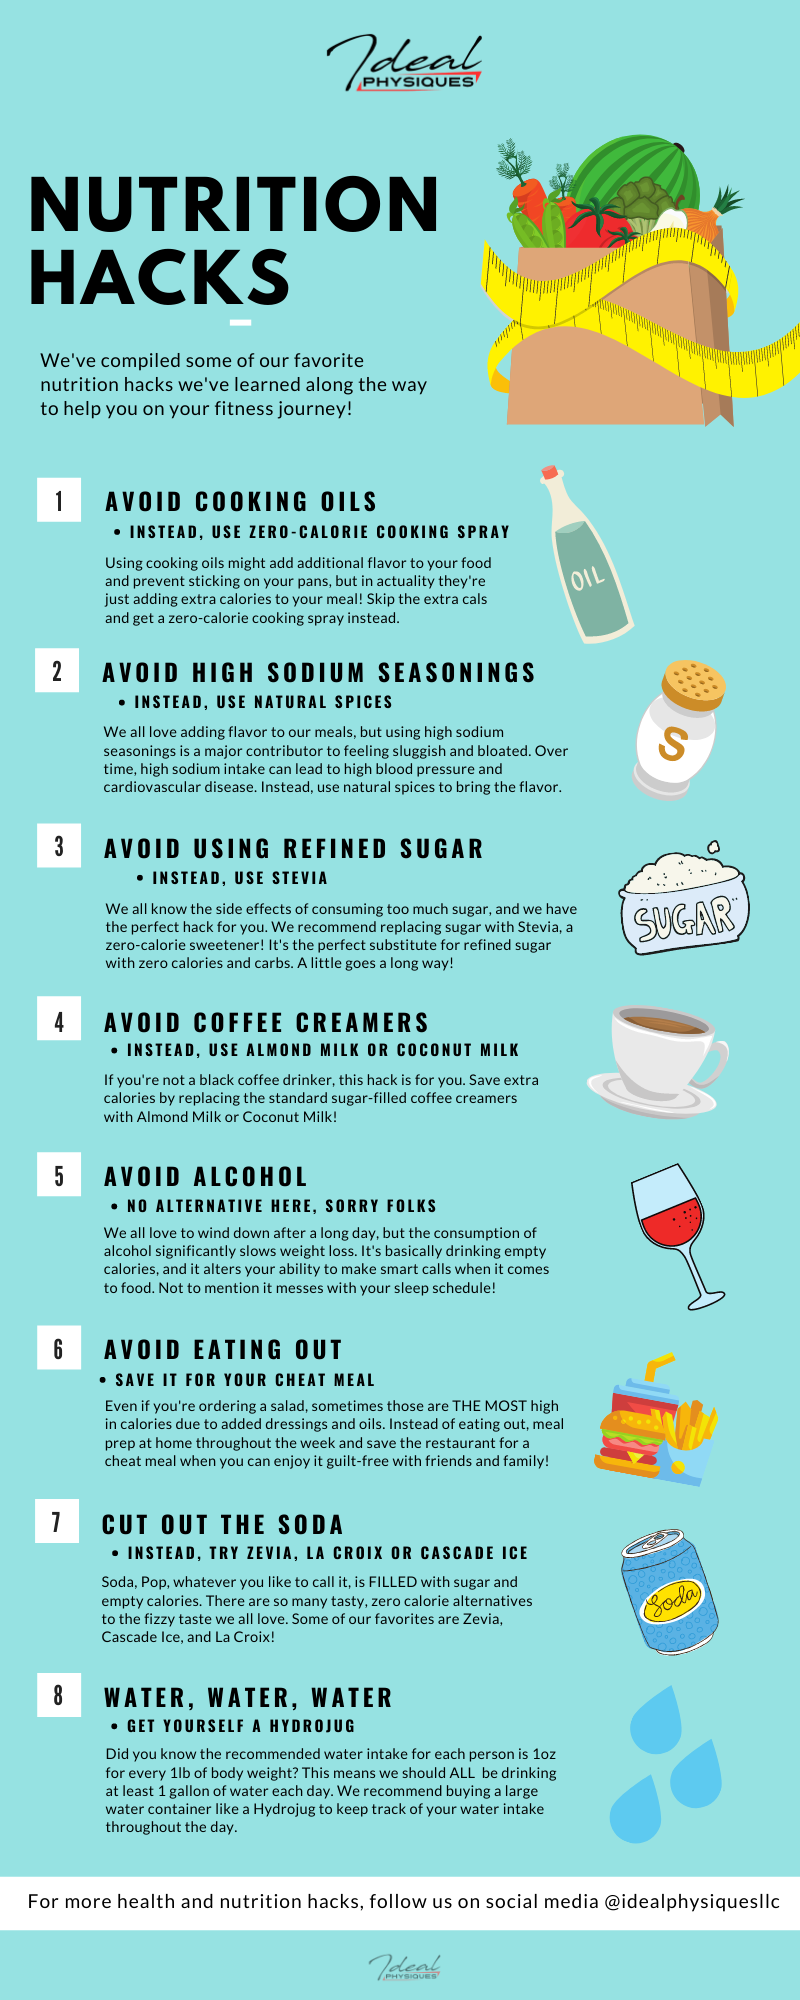 8 Nutrition Hacks for a Healthy Diet